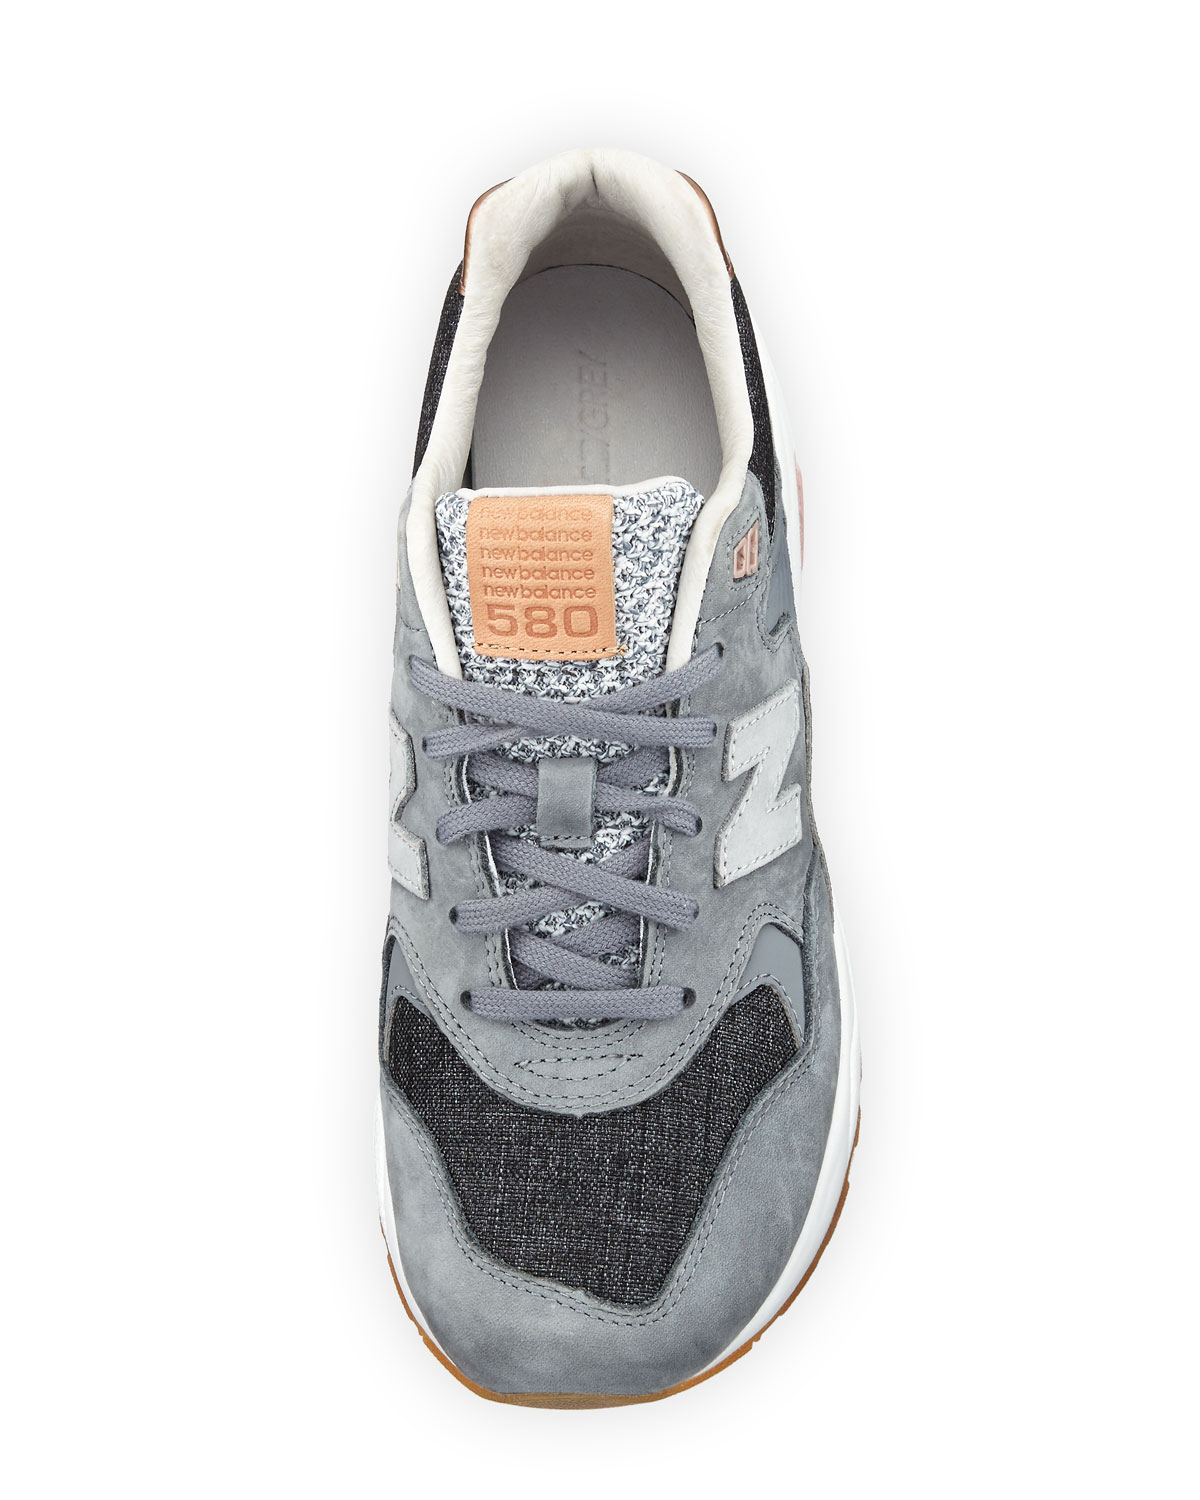 New Balance 580 Suede Low-Top Sneaker, Gray | Neiman Marcus